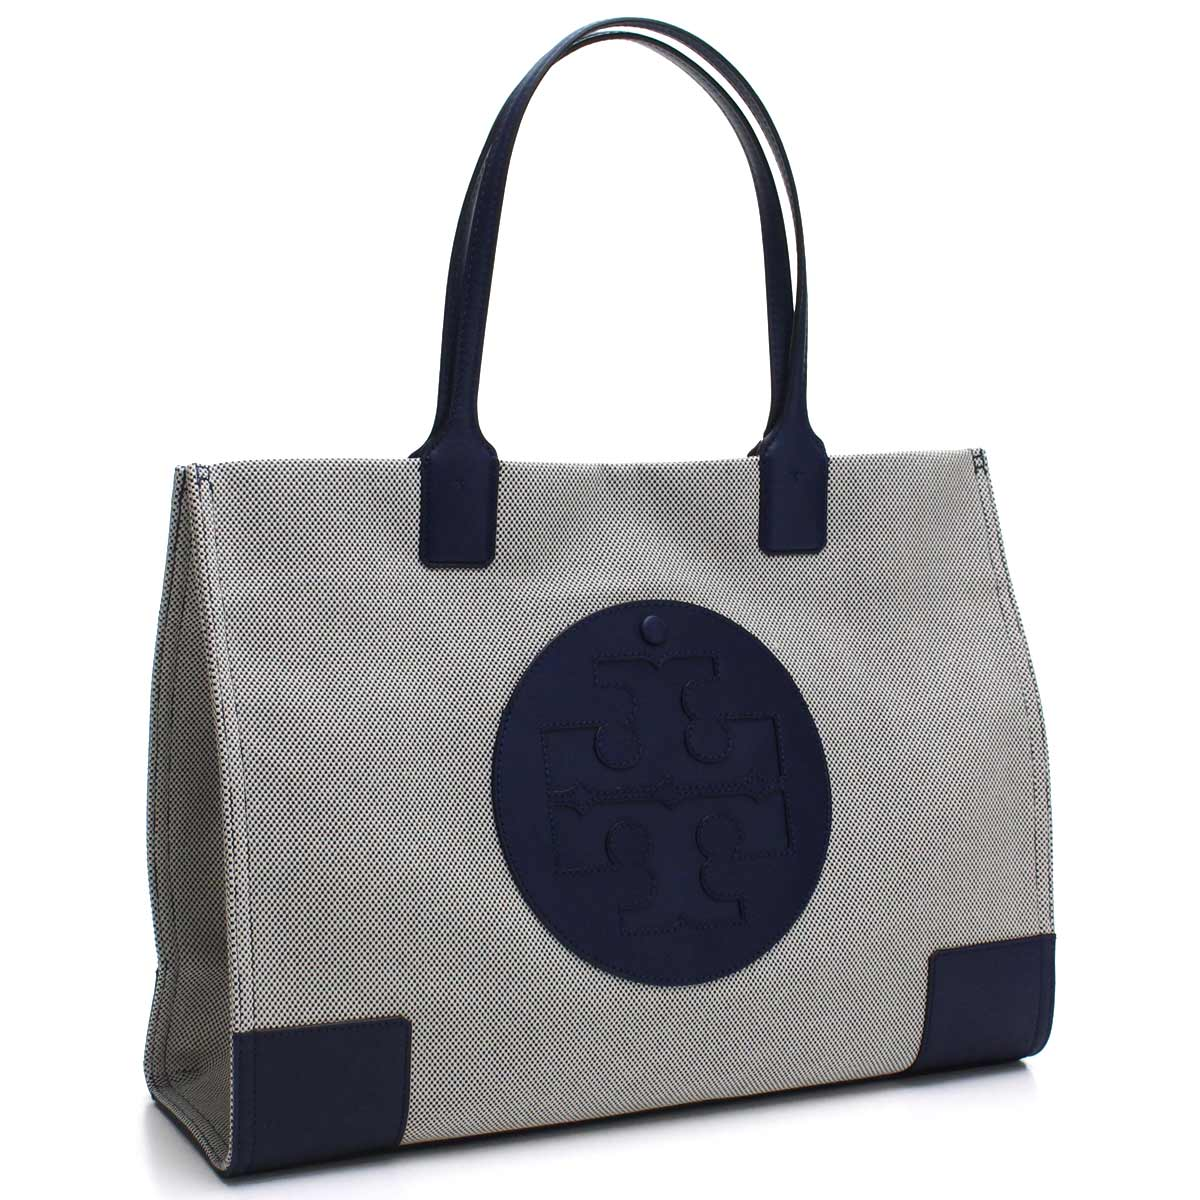 336f1dc56 Bighit The total brand wholesale: Tolly Birch TORY BURCH ELLA CANVAS gills  canvas tote bag 45209 410 NAVY navy system | Rakuten Global Market